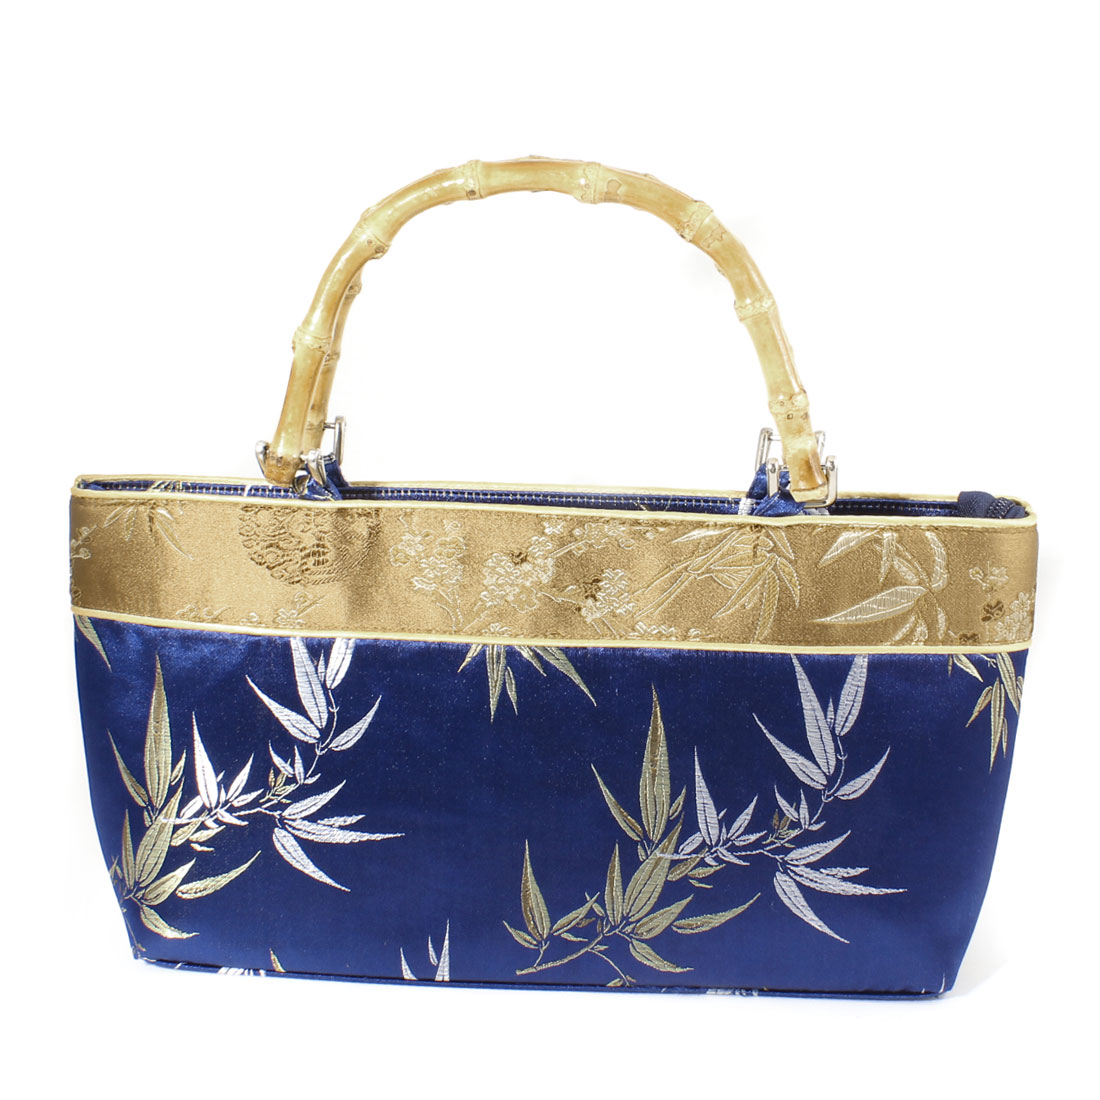 Chinese Embroider Bamboo Pattern Pouch Handbag Royal Blue for Ladies